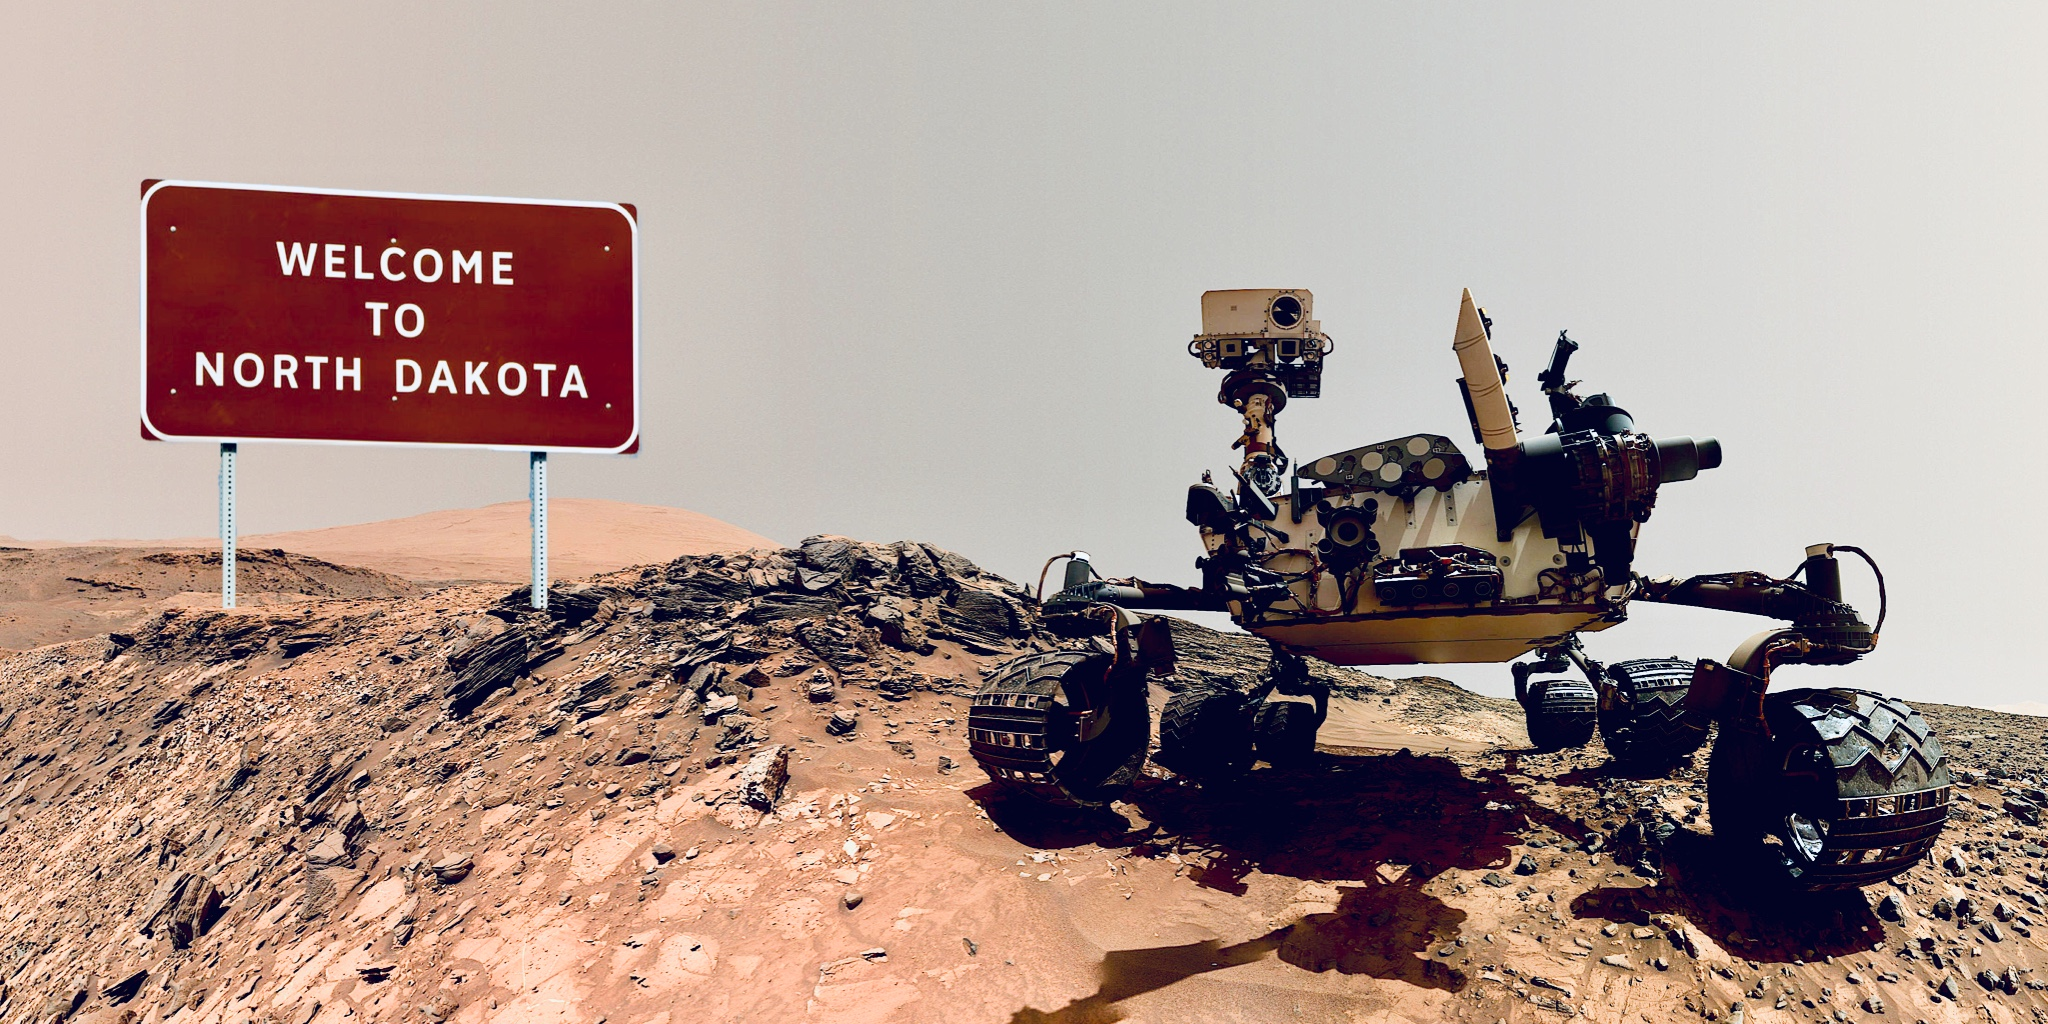 A new rover that was sent to visit the desolate state